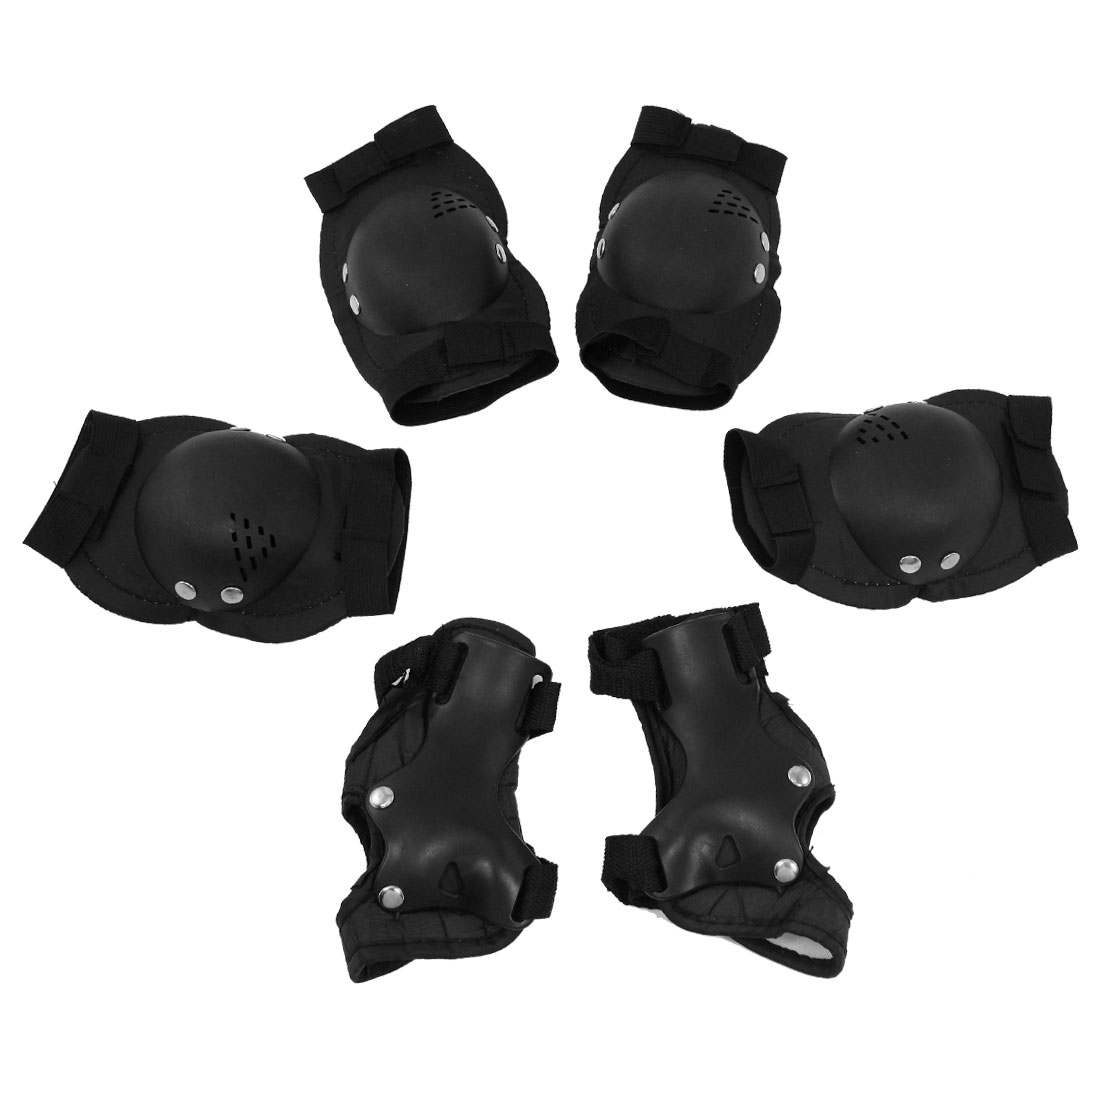 Set 6 in 1 Skiing Skating Protective Palm Elbow Knee Support Pad Black for Children